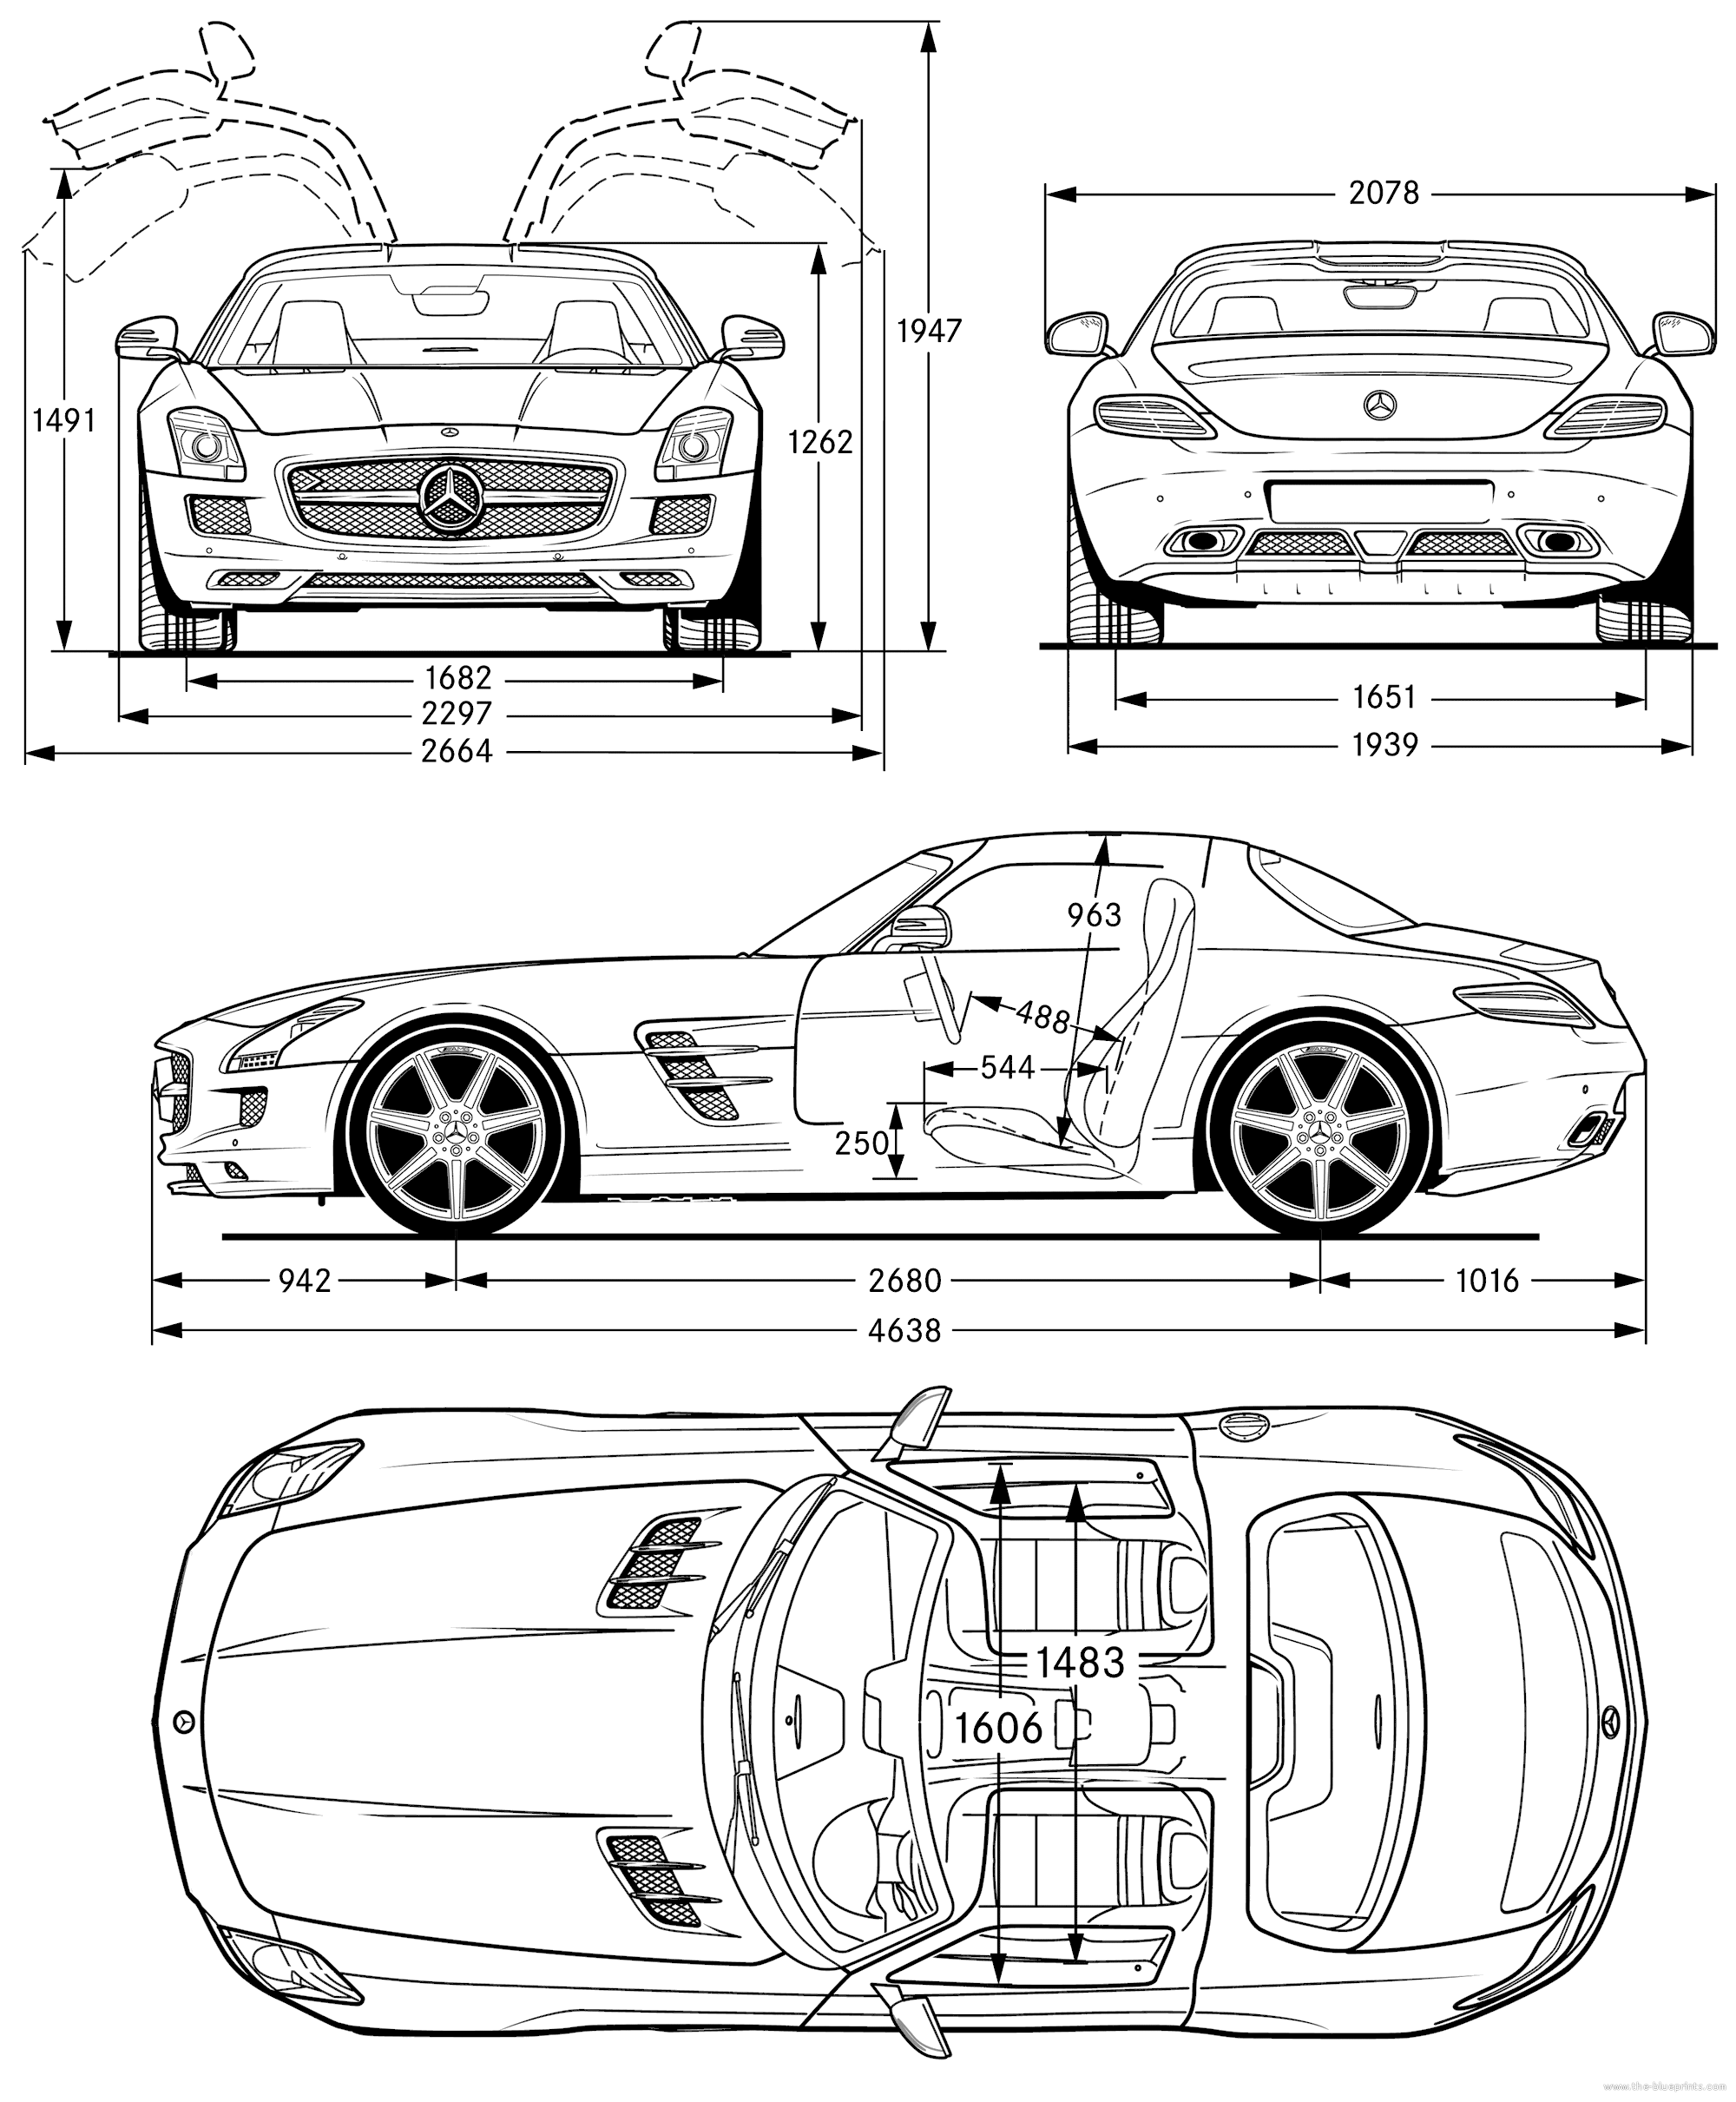 11 best images about blueprints on pinterest lamborghini aventador 11 best images about blueprints on pinterest lamborghini aventador lp700 4 cars and coupe malvernweather